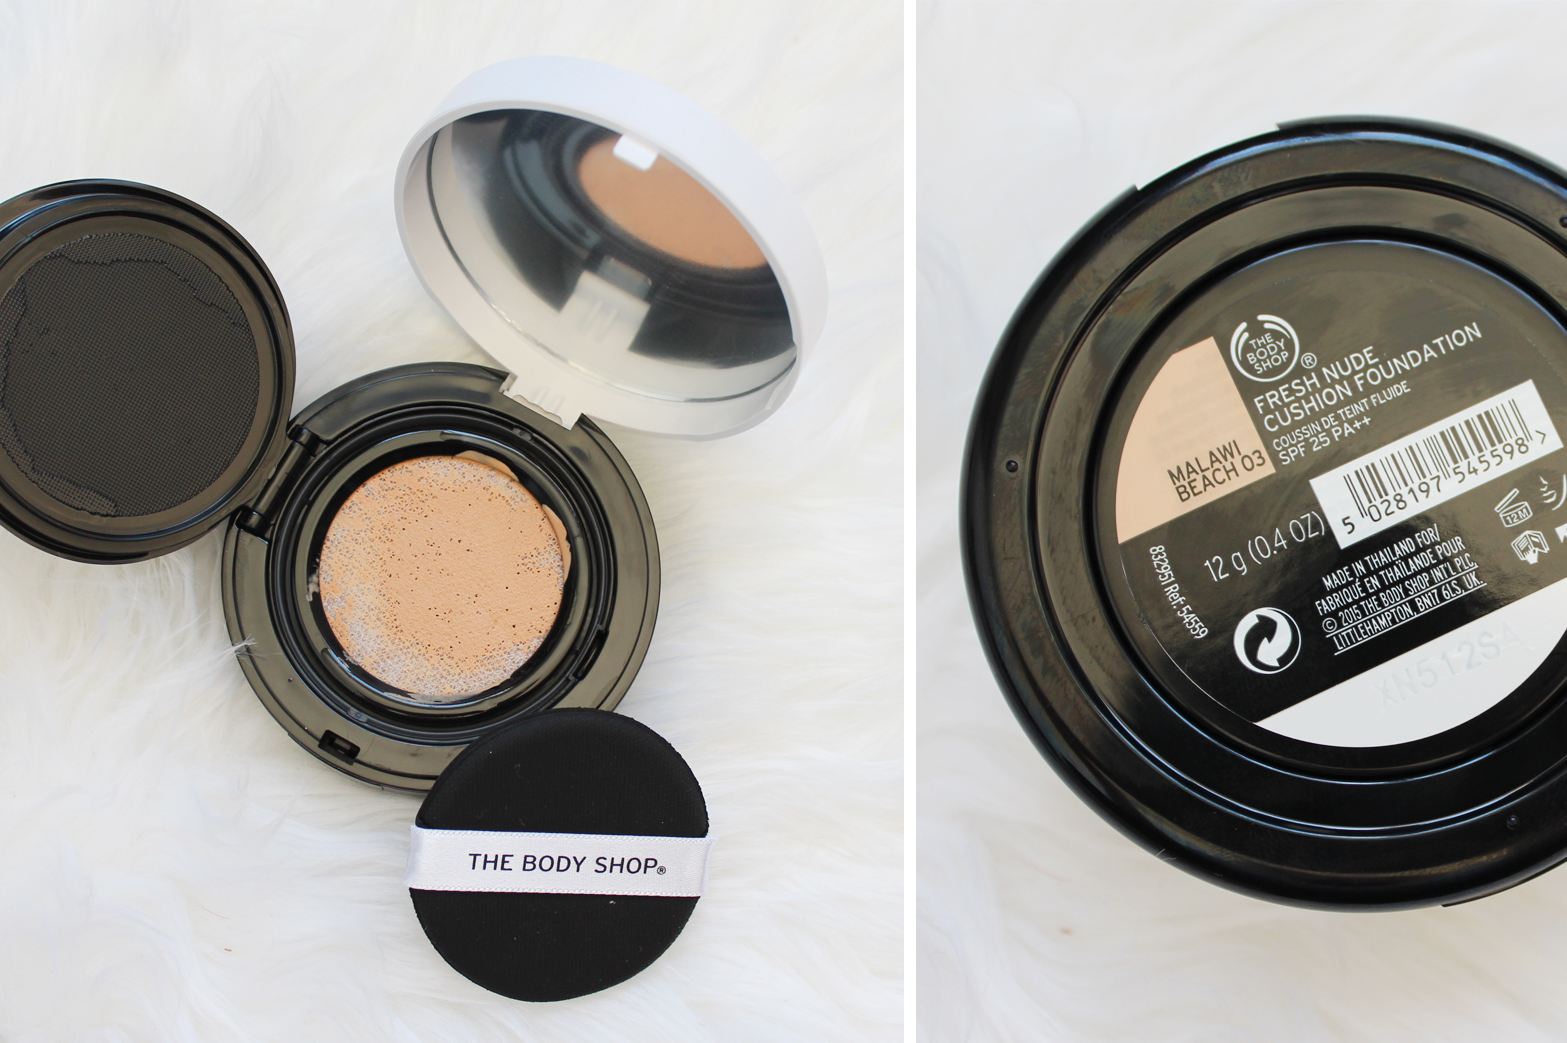 THE BODY SHOP | New Makeup Editions - Down to Earth Palettes + Fresh Nude Cushion Foundation - CassandraMyee